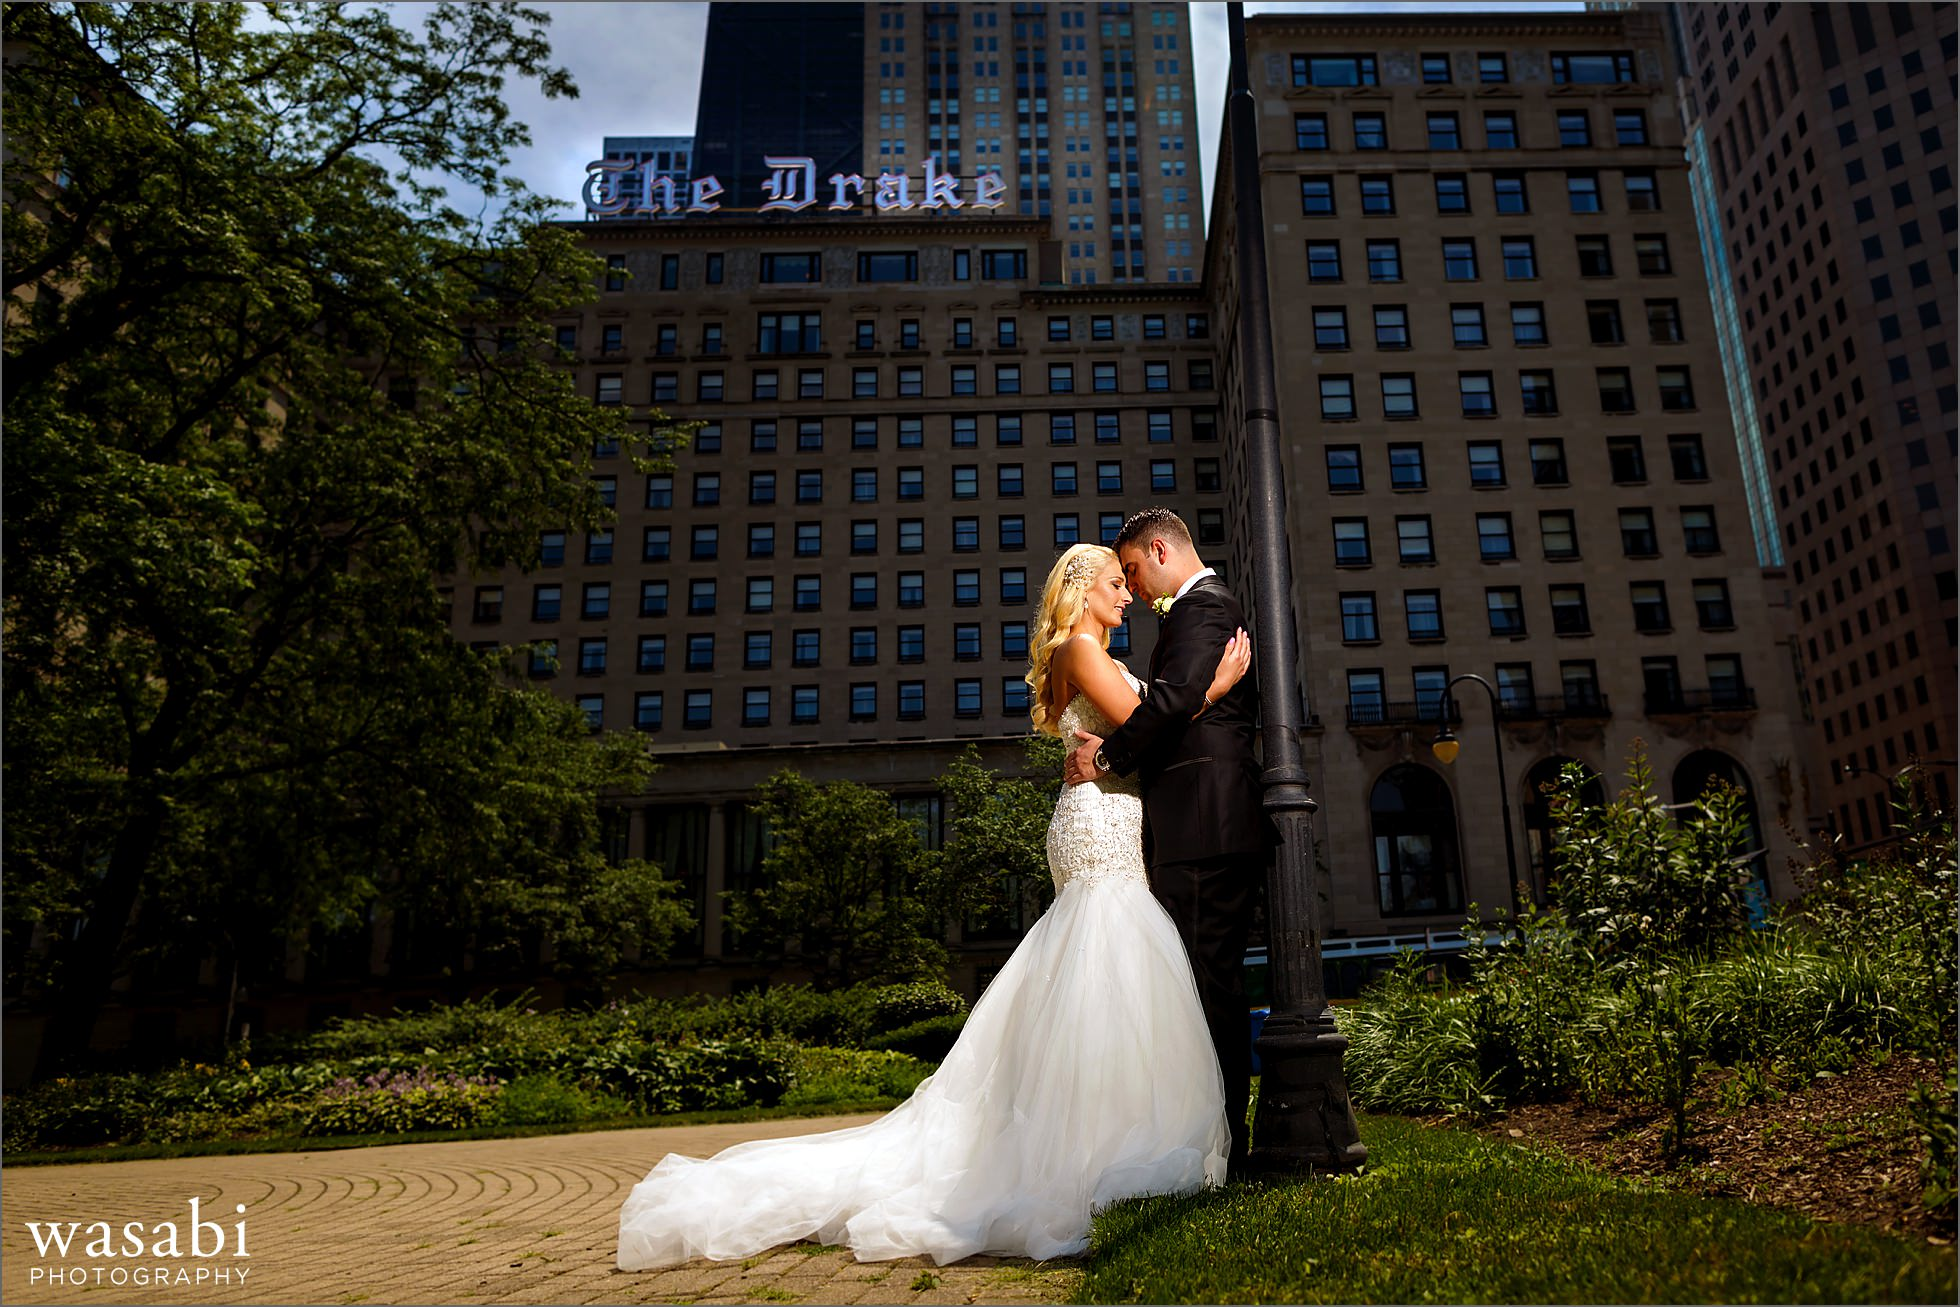 wide angle wedding photo of bride and groom couple with The Drake Hotel in the background